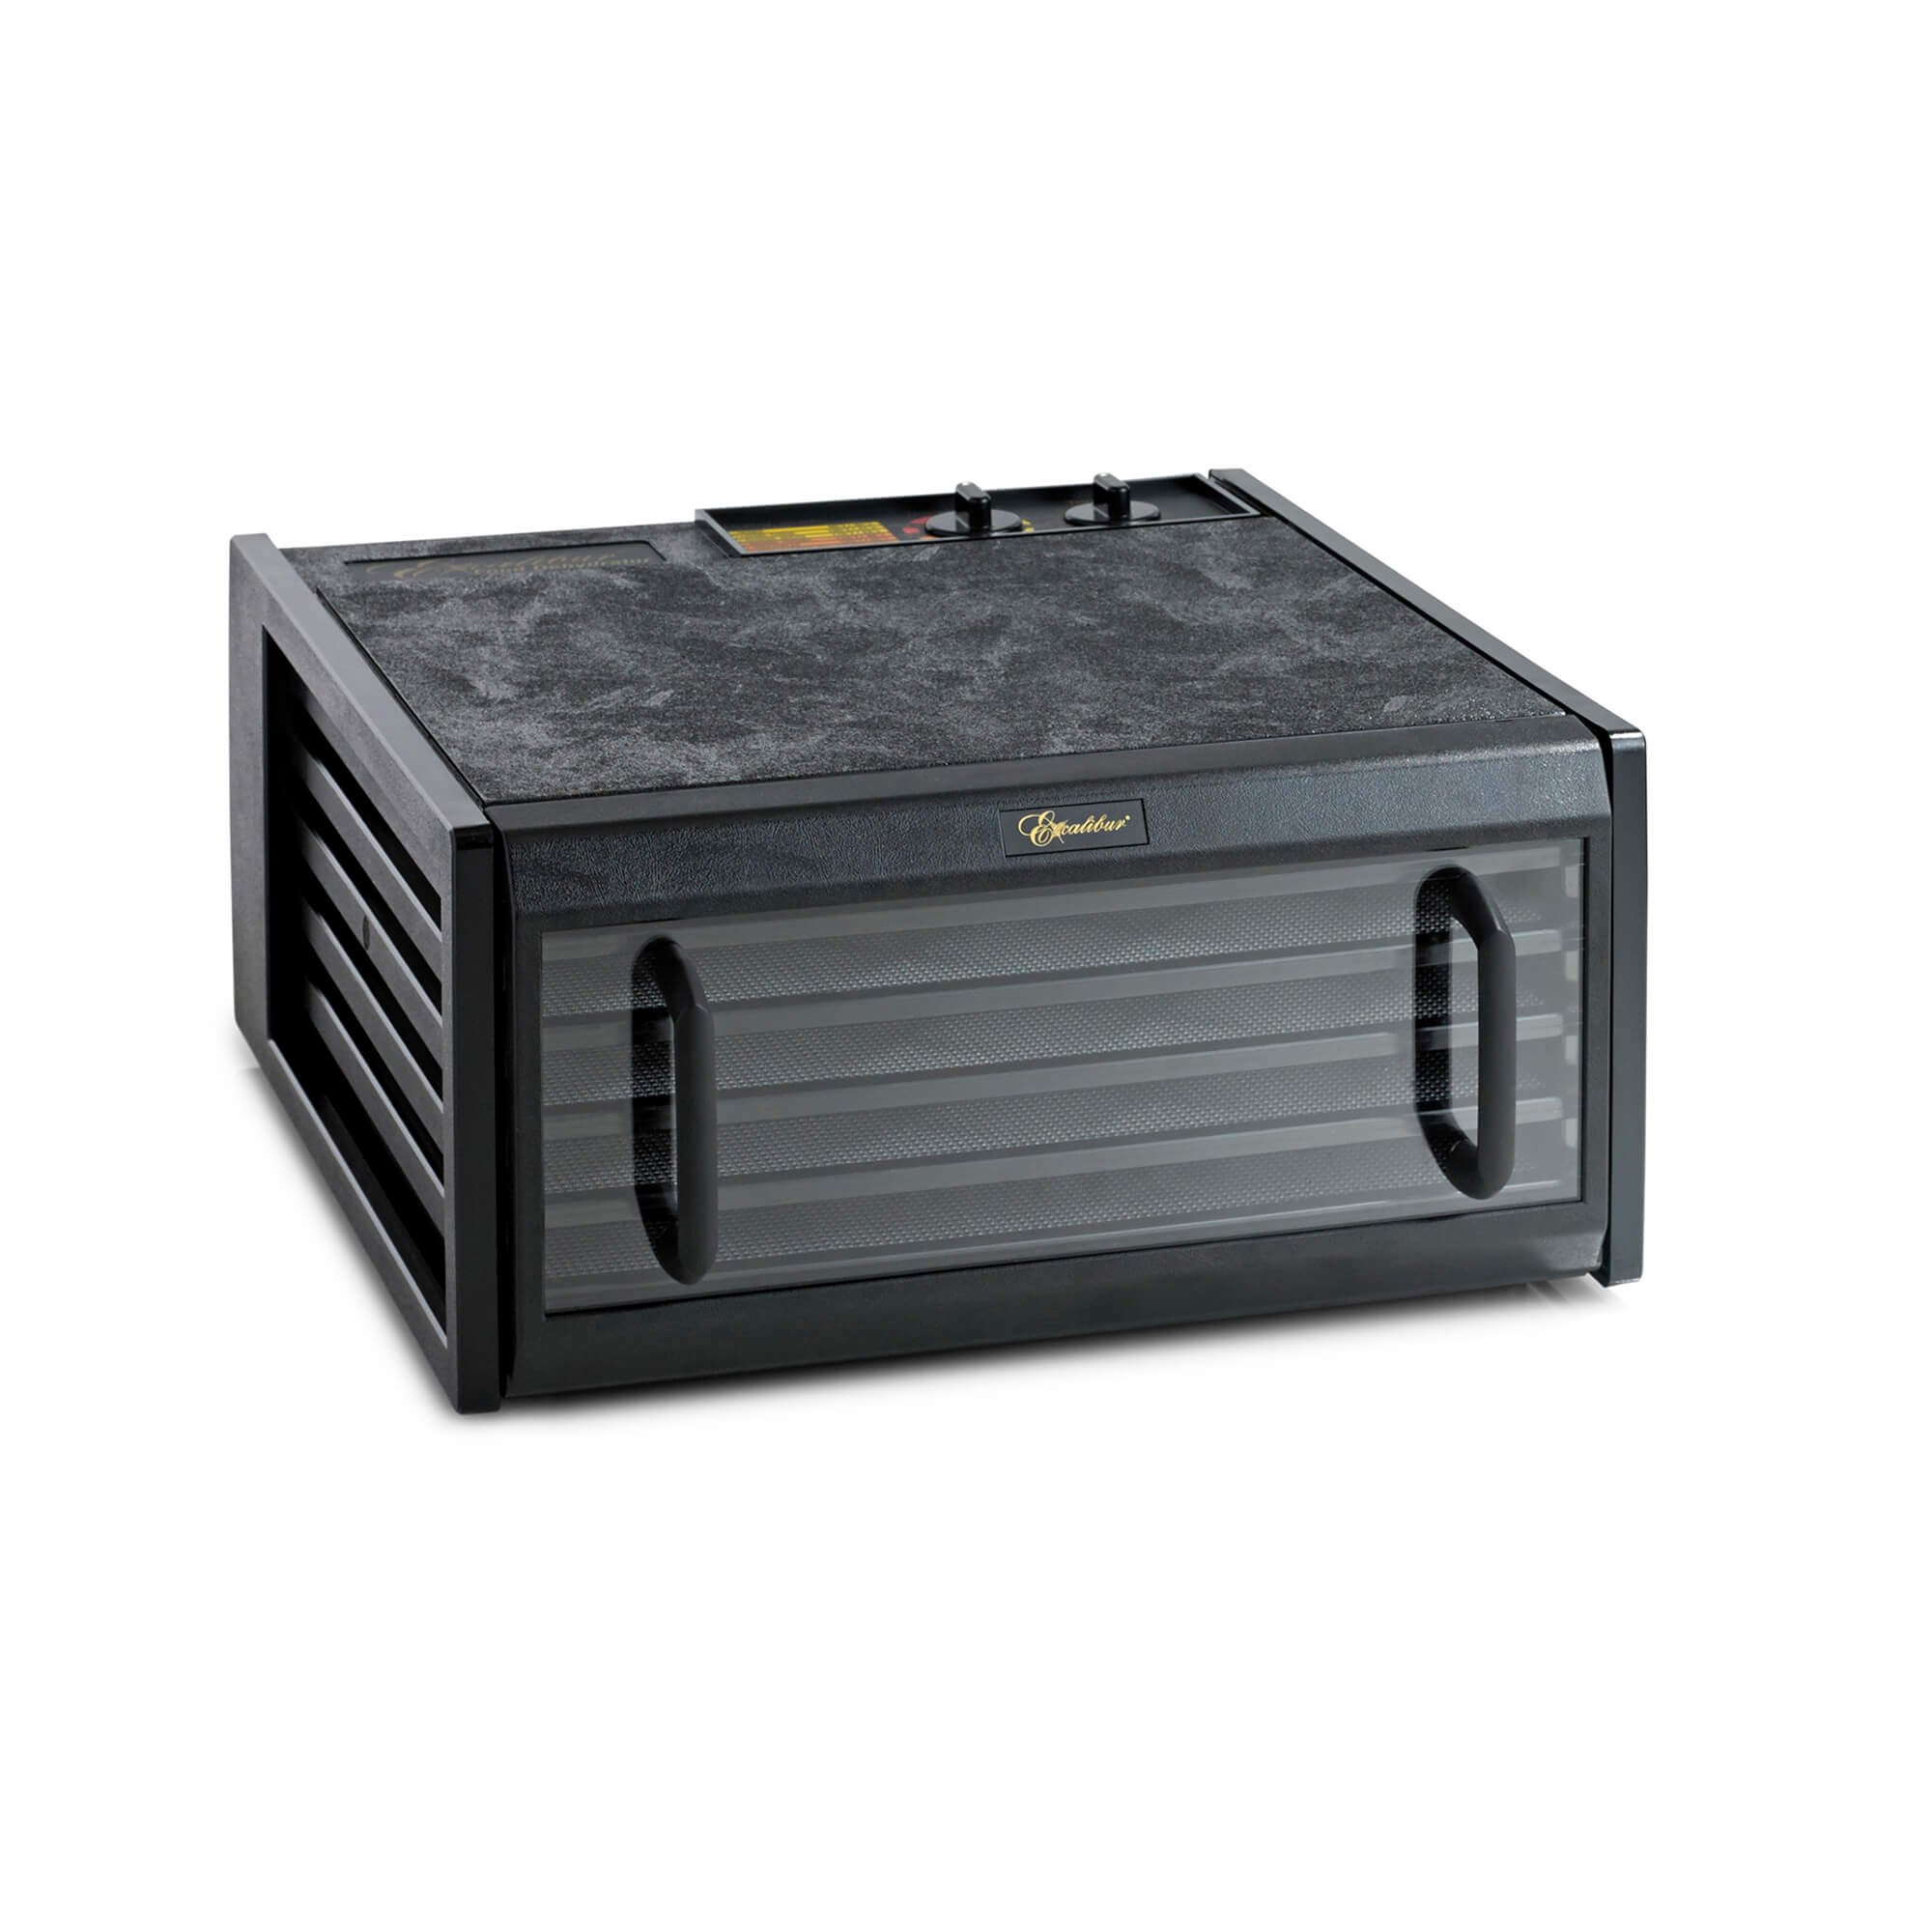 Excalibur 4526TCDB 5 tray dehydrator with clear door closed.